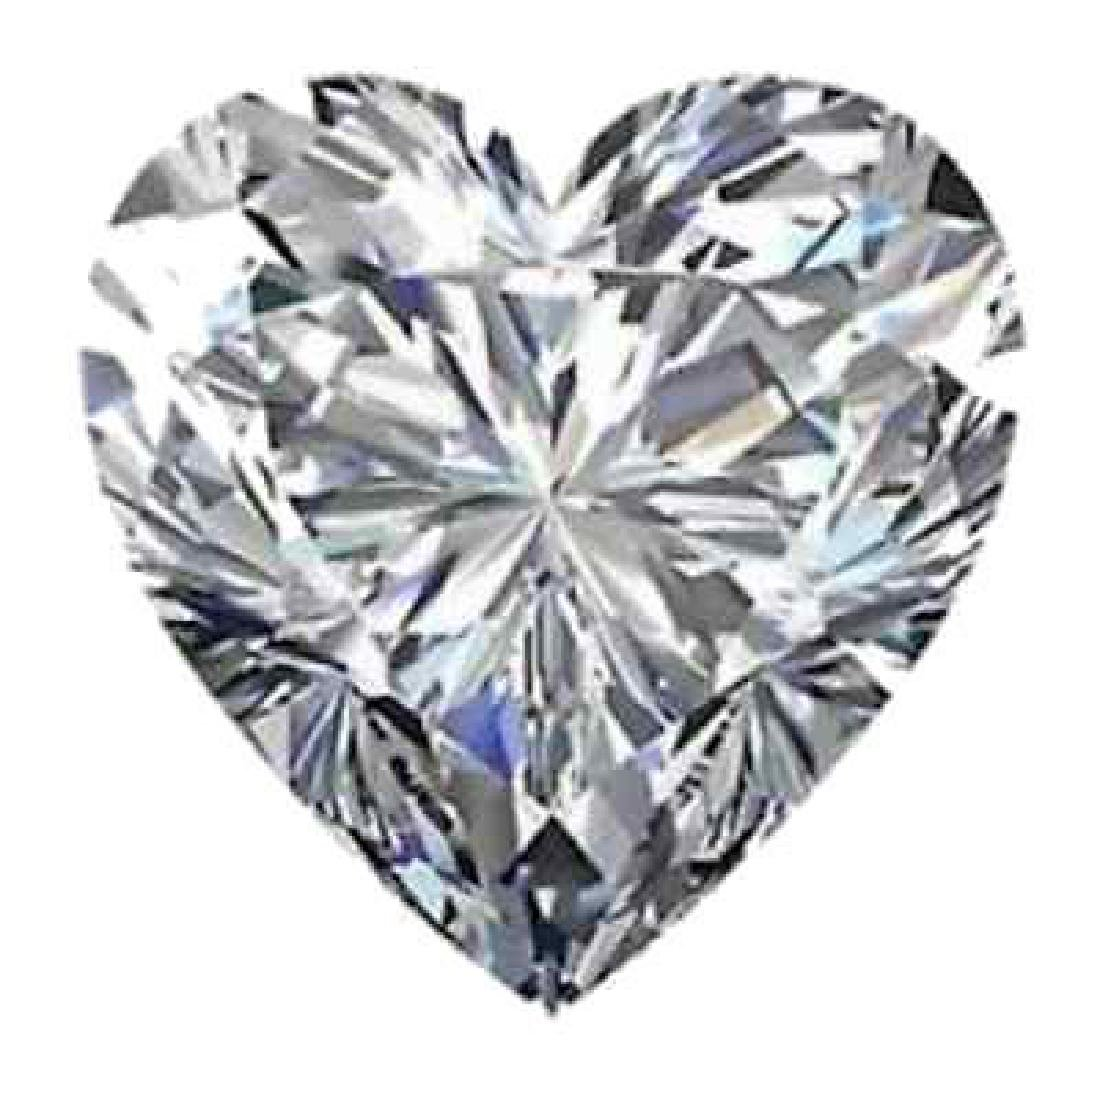 3.16cts - Bianco Diamond Heart Shaped Grade 6AAAAAA -